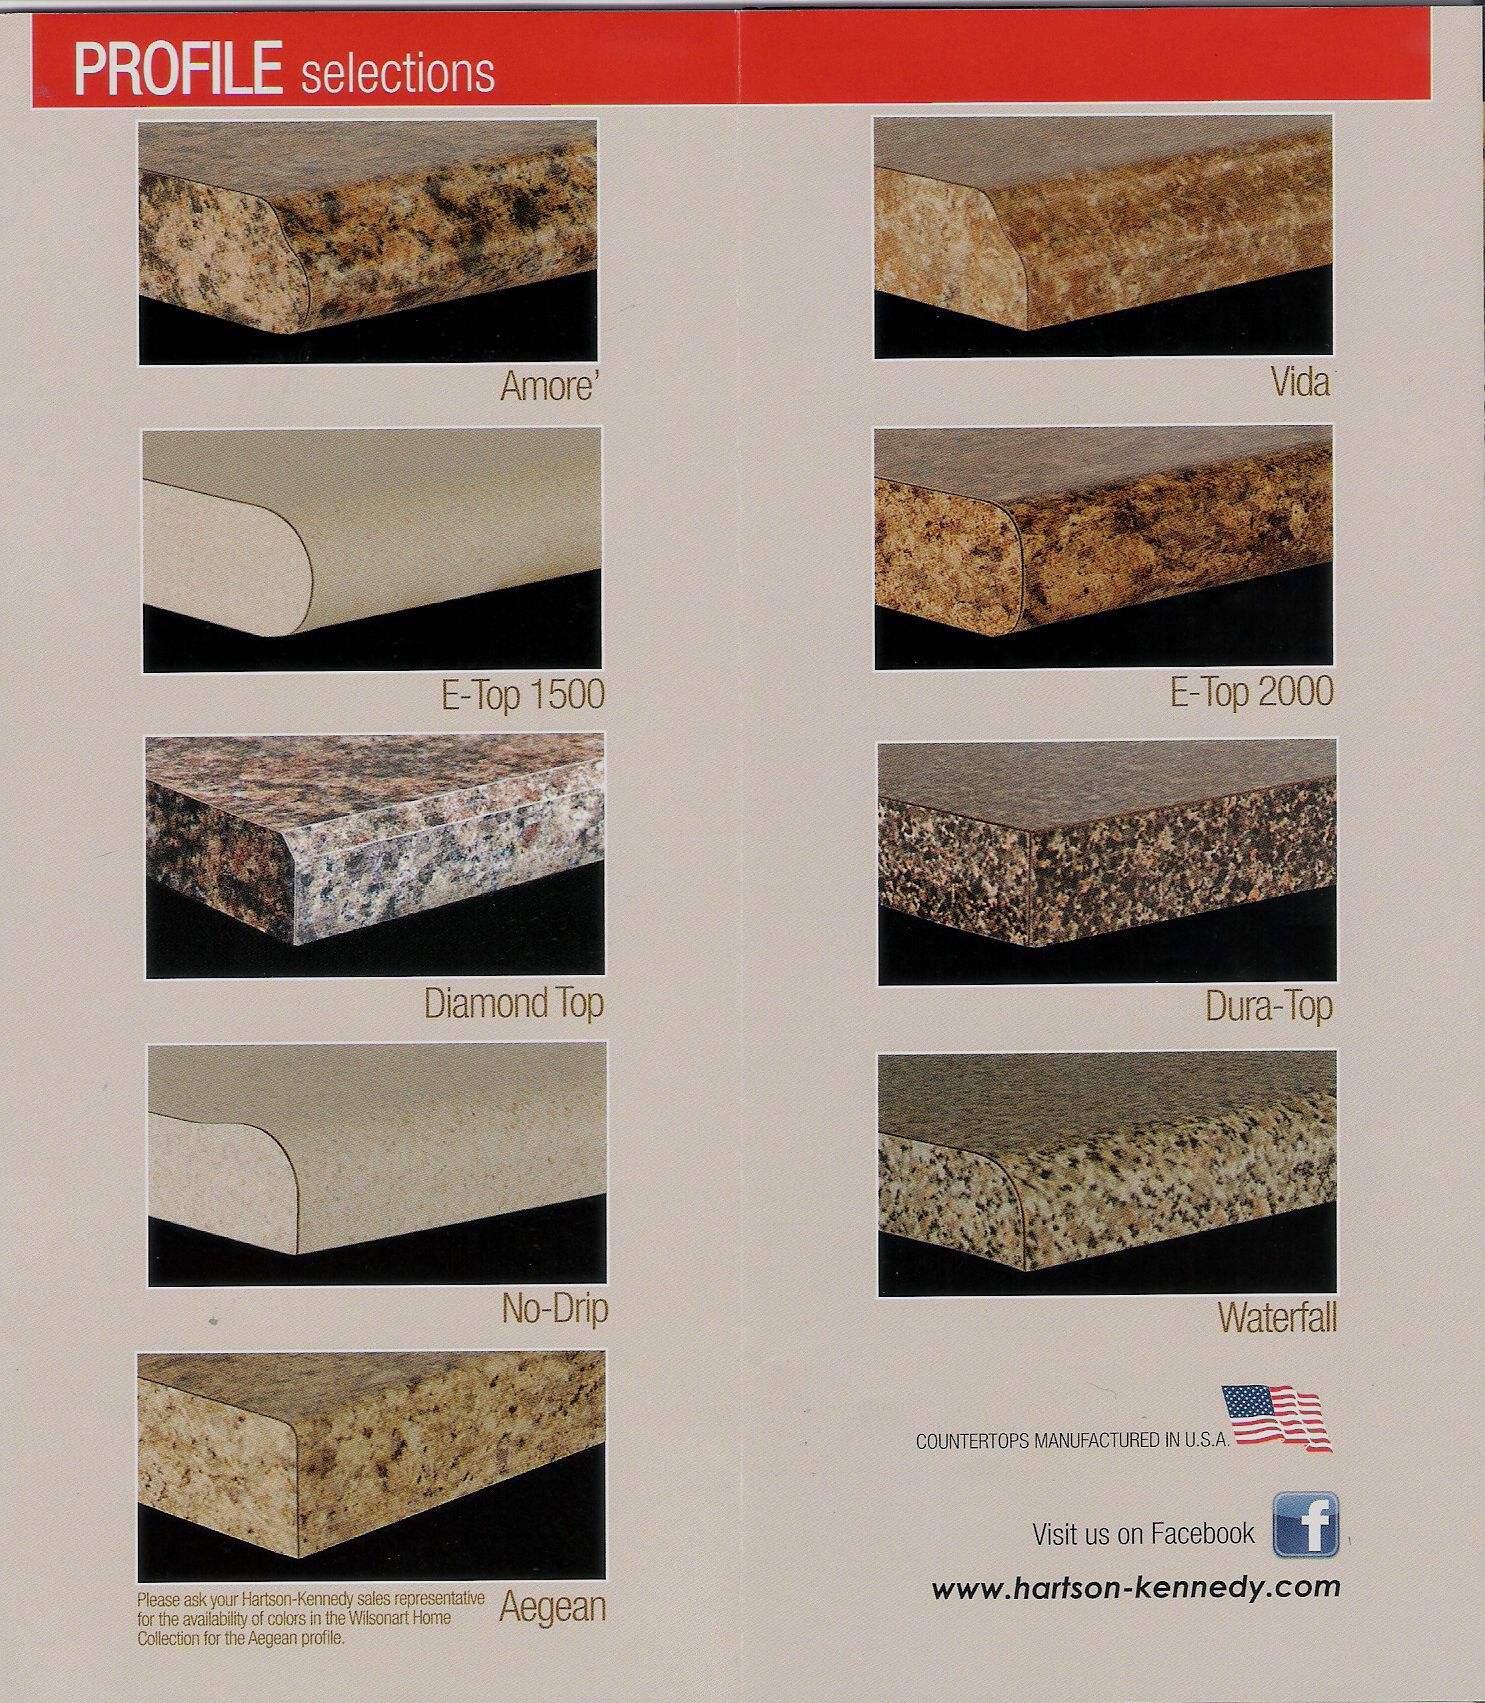 Hartson Kennedy Ogee Edge Amore Counters Kitchen Countertops